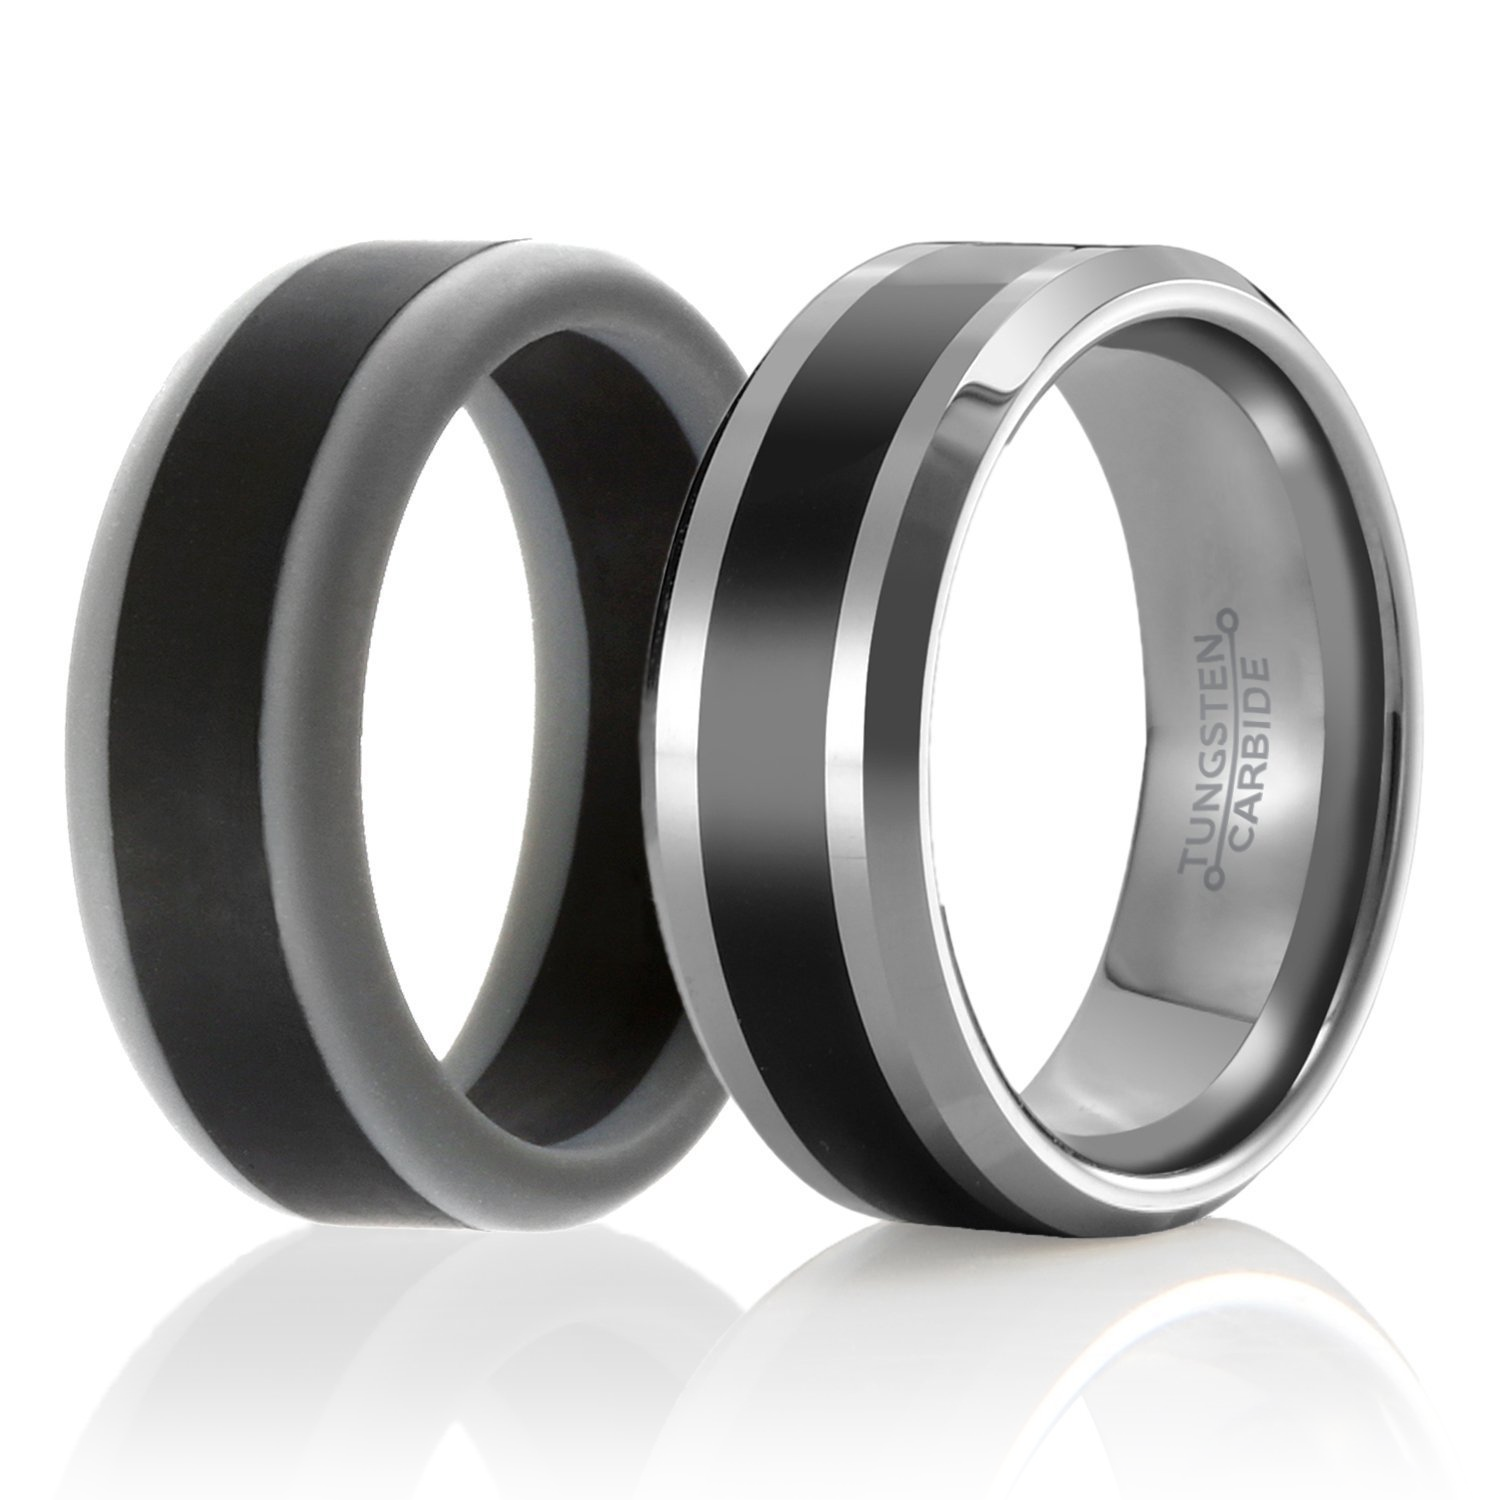 Mens Twin Set of 2 1 Tungsten Wedding Ring and 1 Silicone